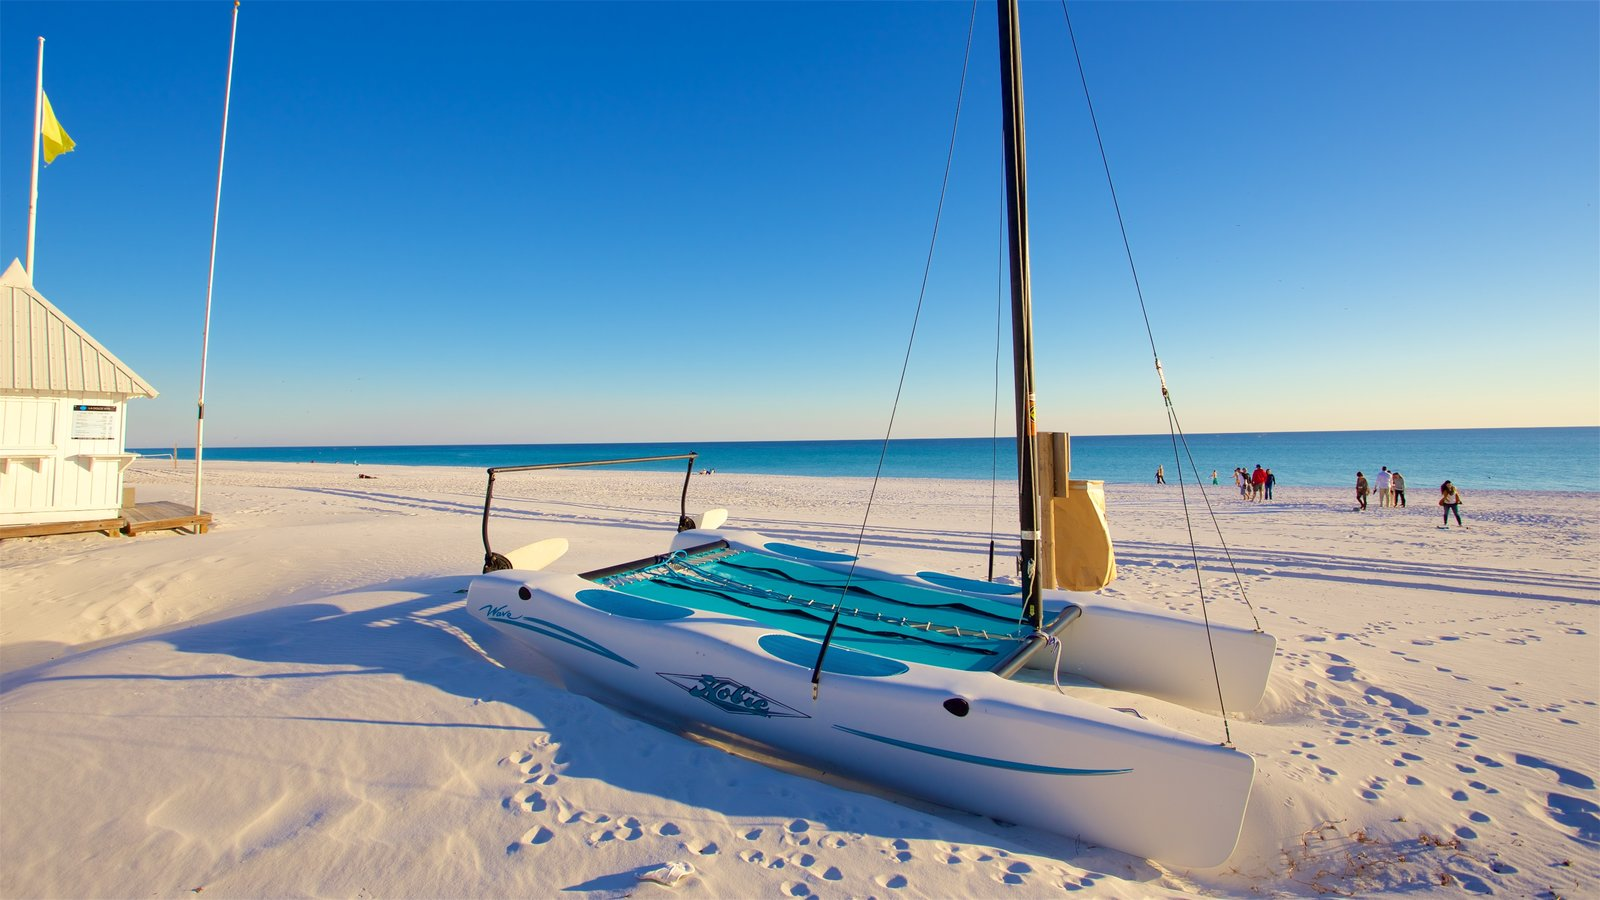 Florida Panhandle featuring a bay or harbor, sailing and a beach